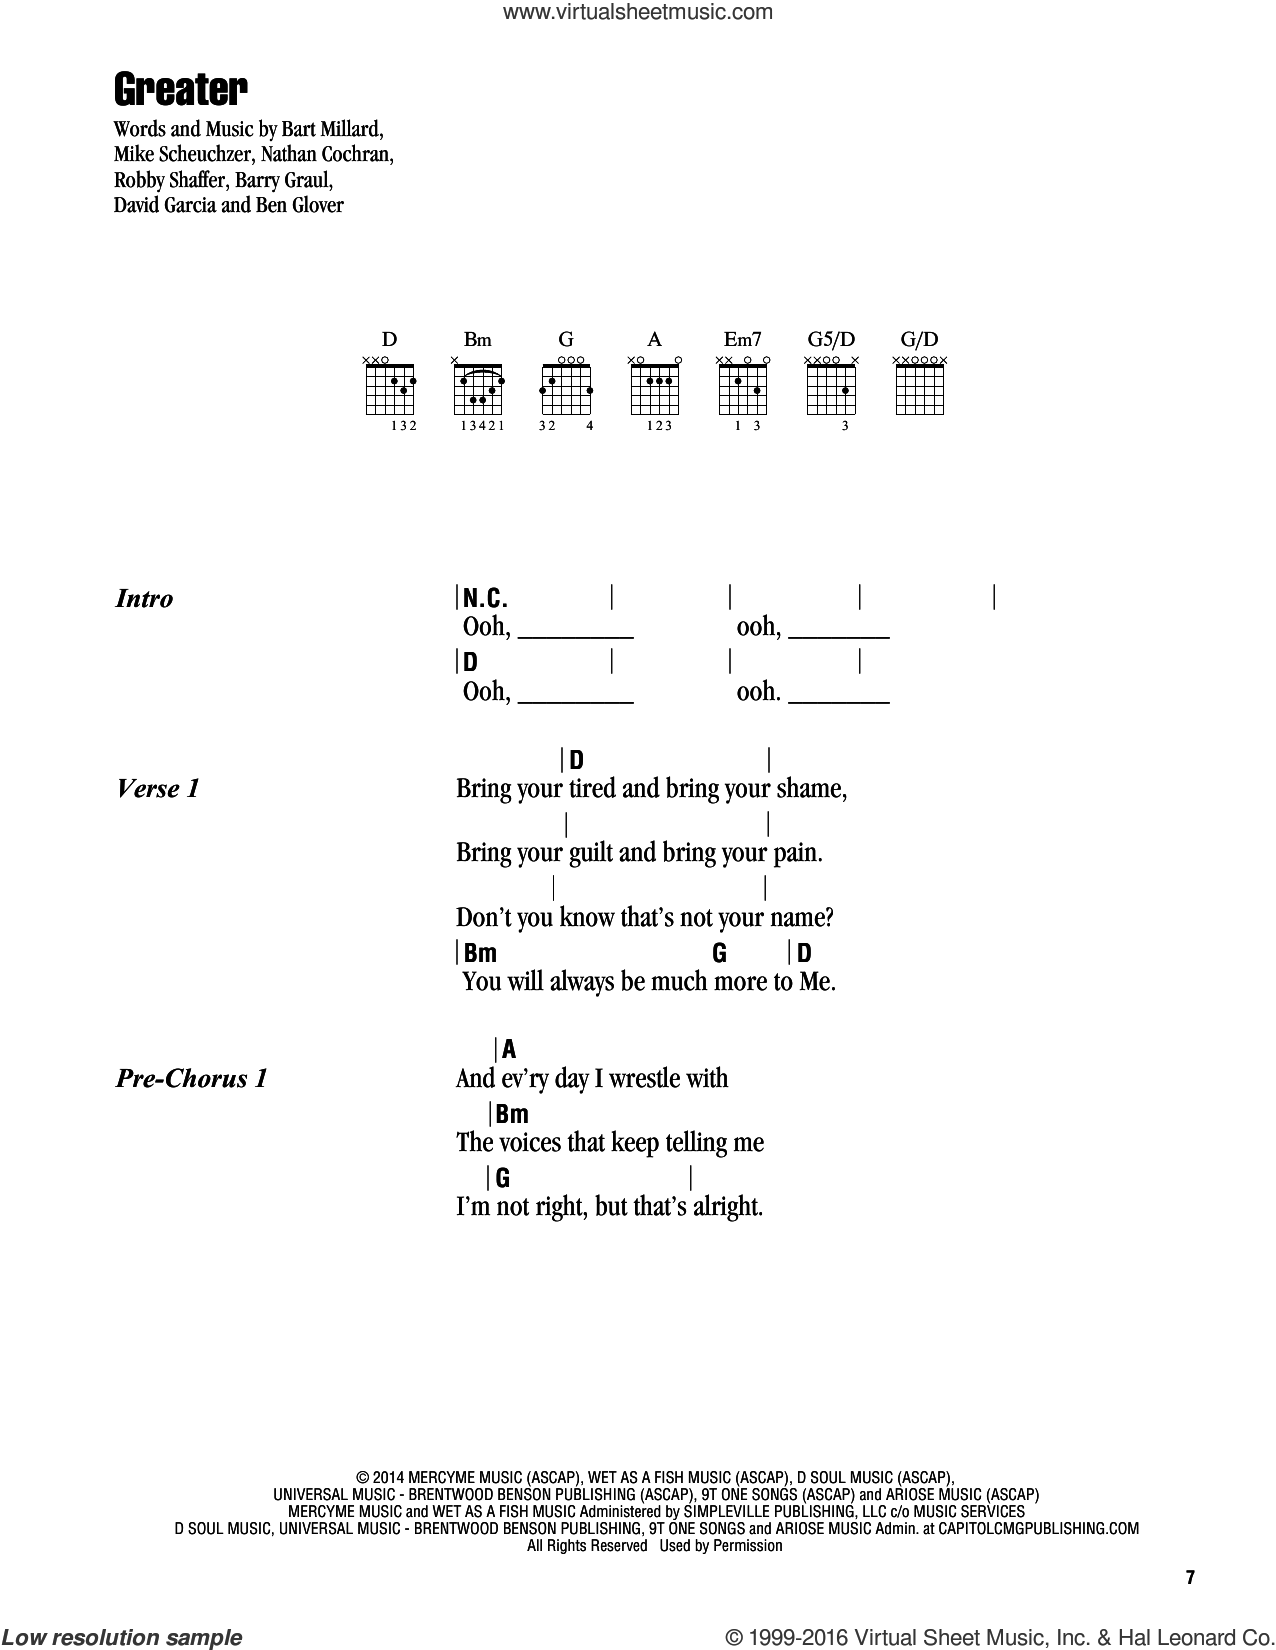 Greater sheet music for guitar (chords) by MercyMe, Barry Graul, Bart Millard, Ben Glover, David Garcia, Mike Scheuchzer, Nathan Cochran and Robby Shaffer, intermediate